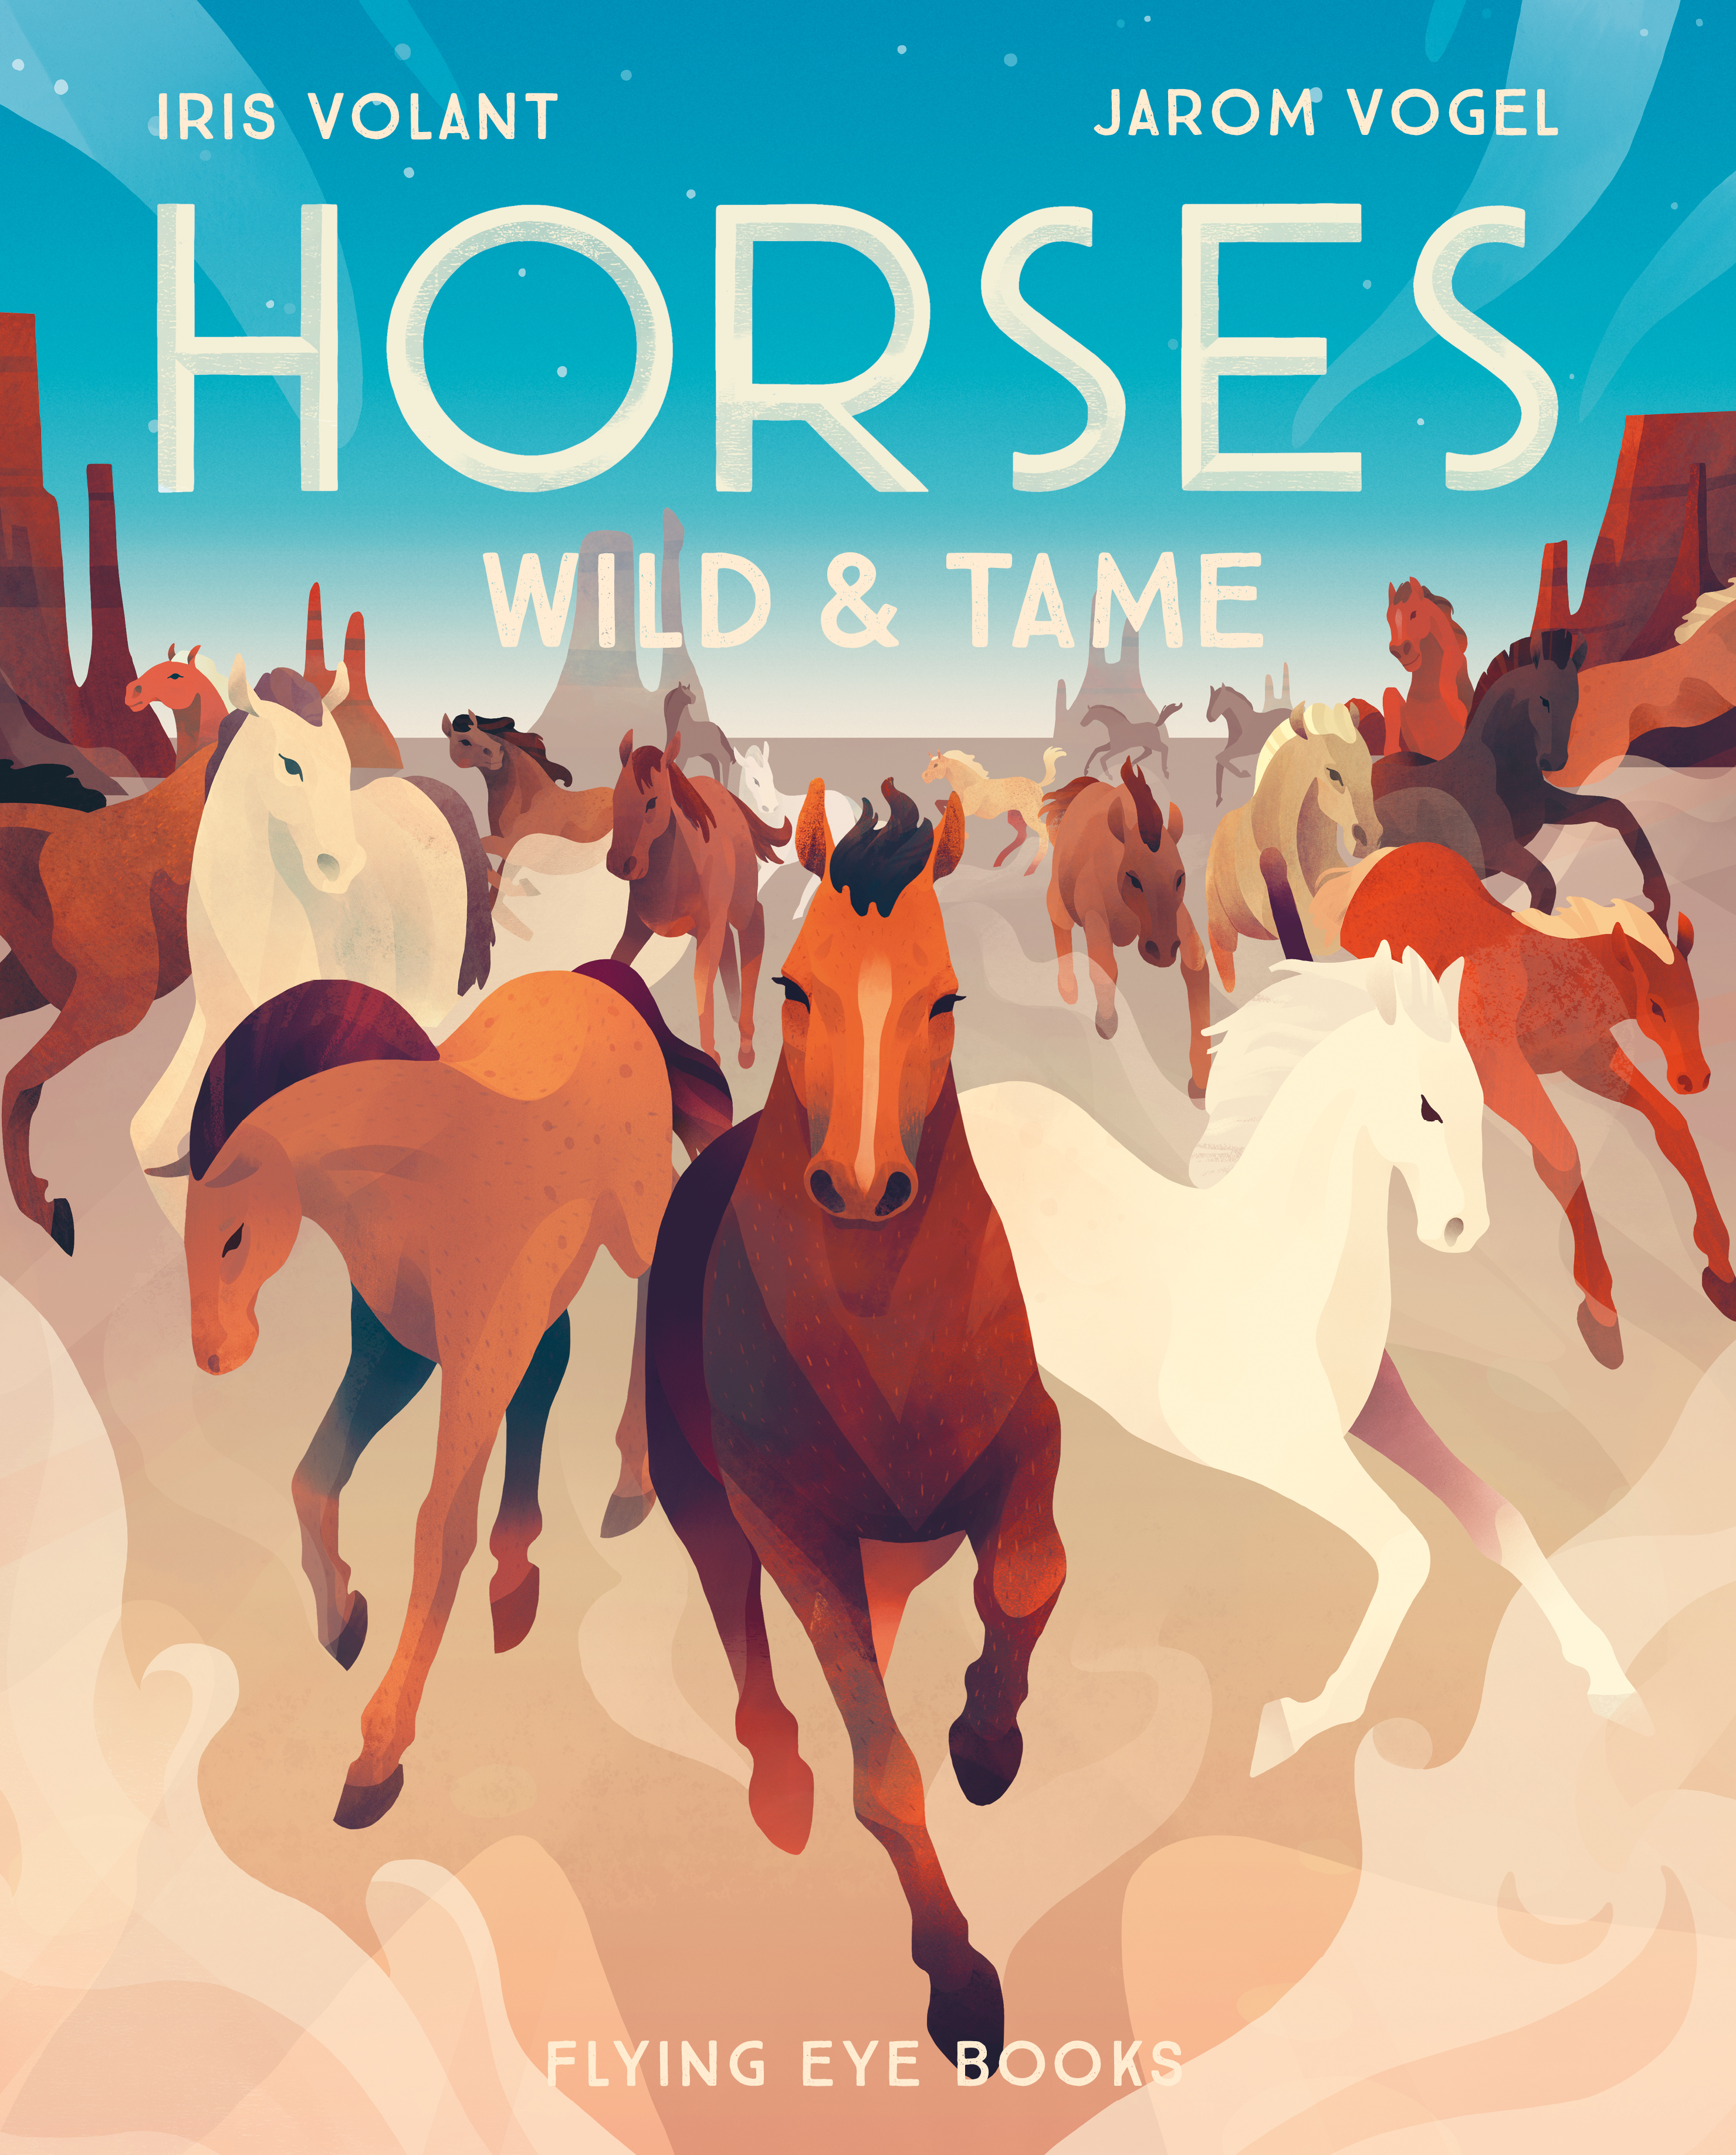 Horses: Wild and Tame